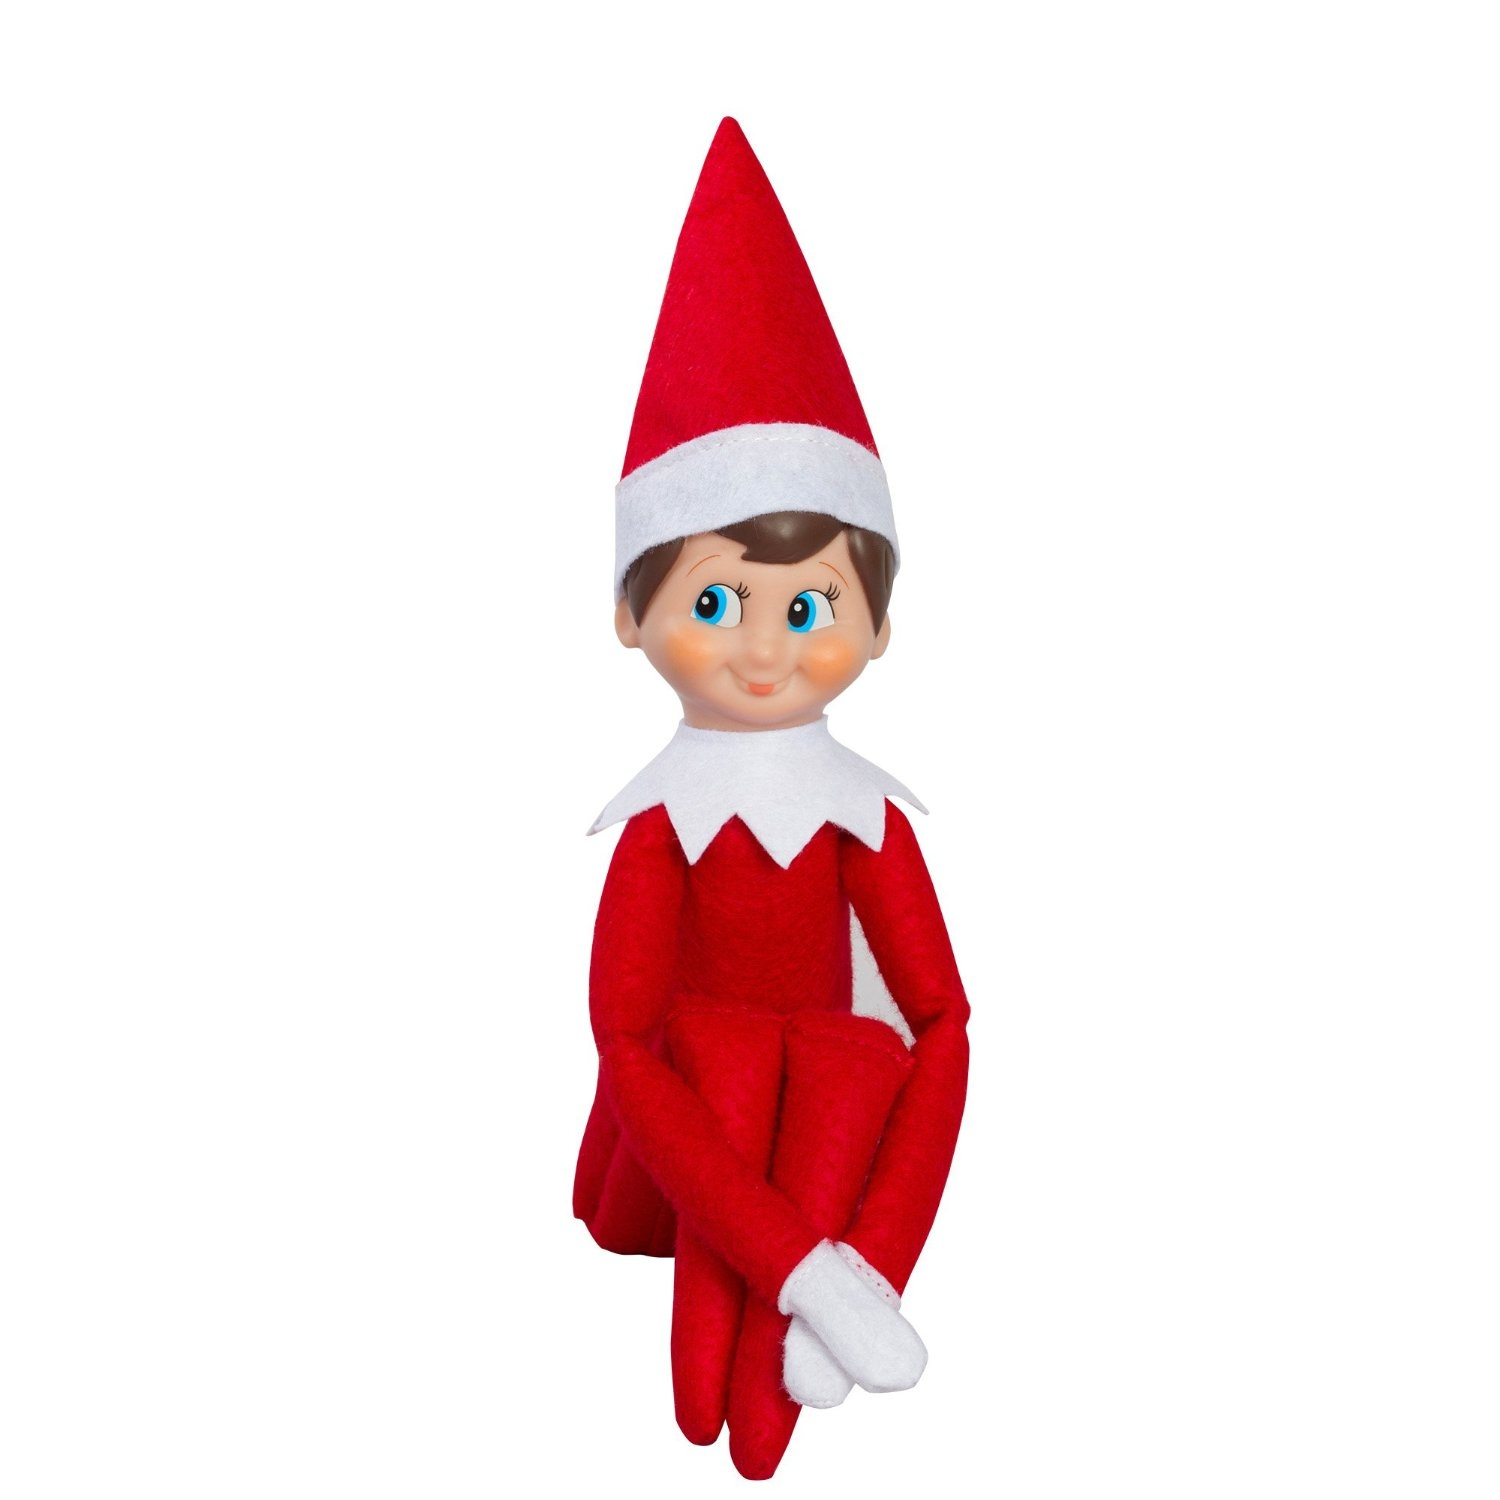 Christmas Clipart Elf On The Shelf at GetDrawings.com.